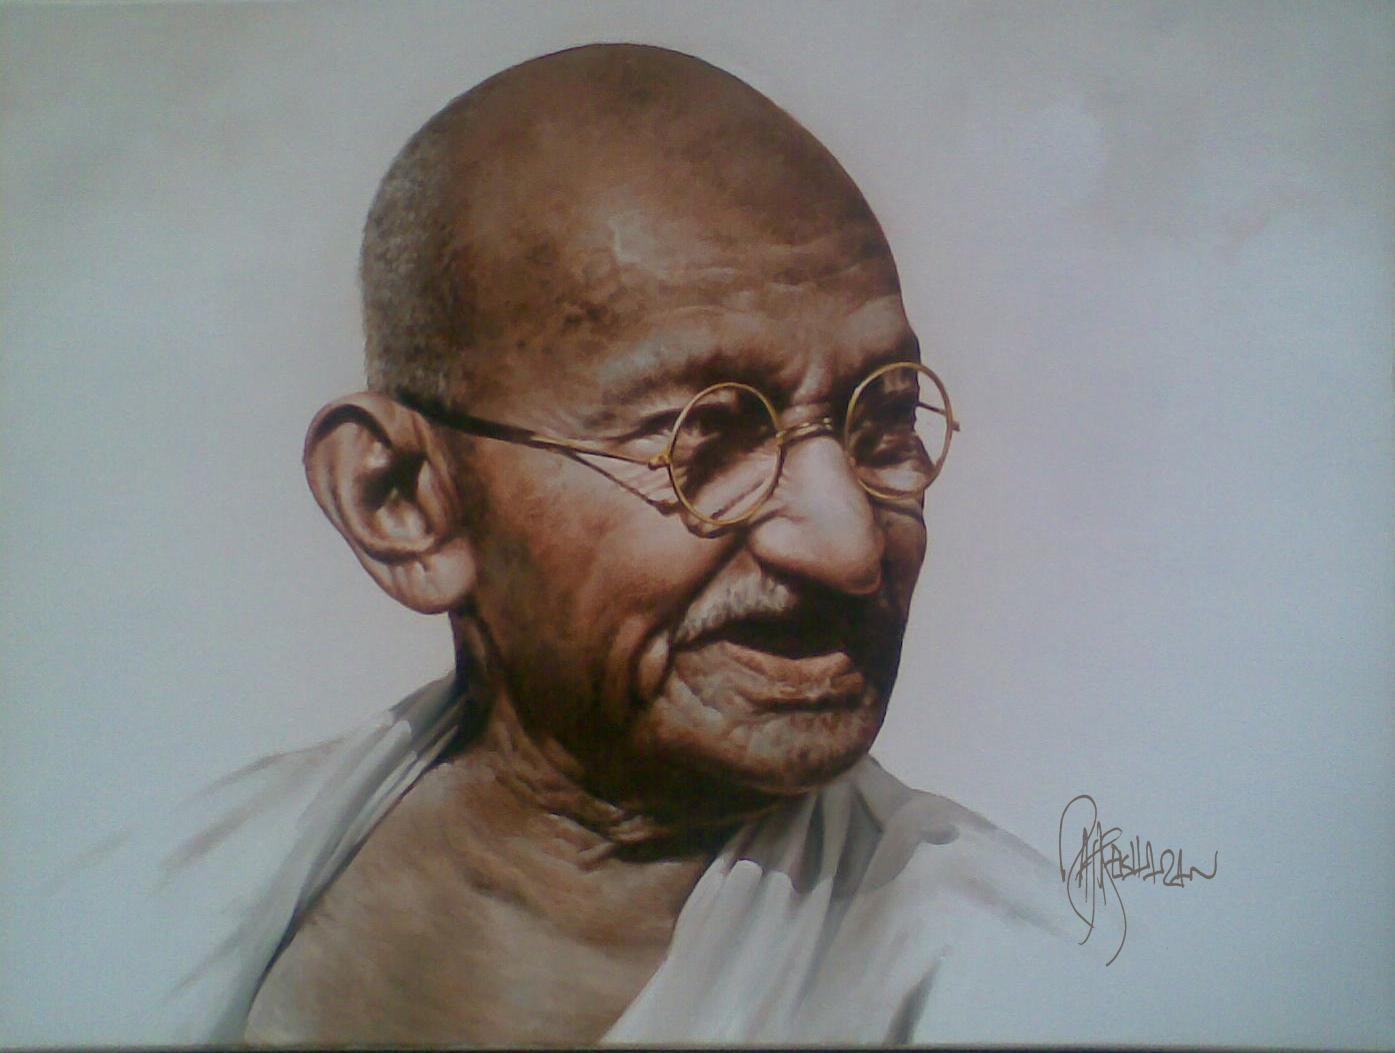 mahatma gandhi a hero to india and the world